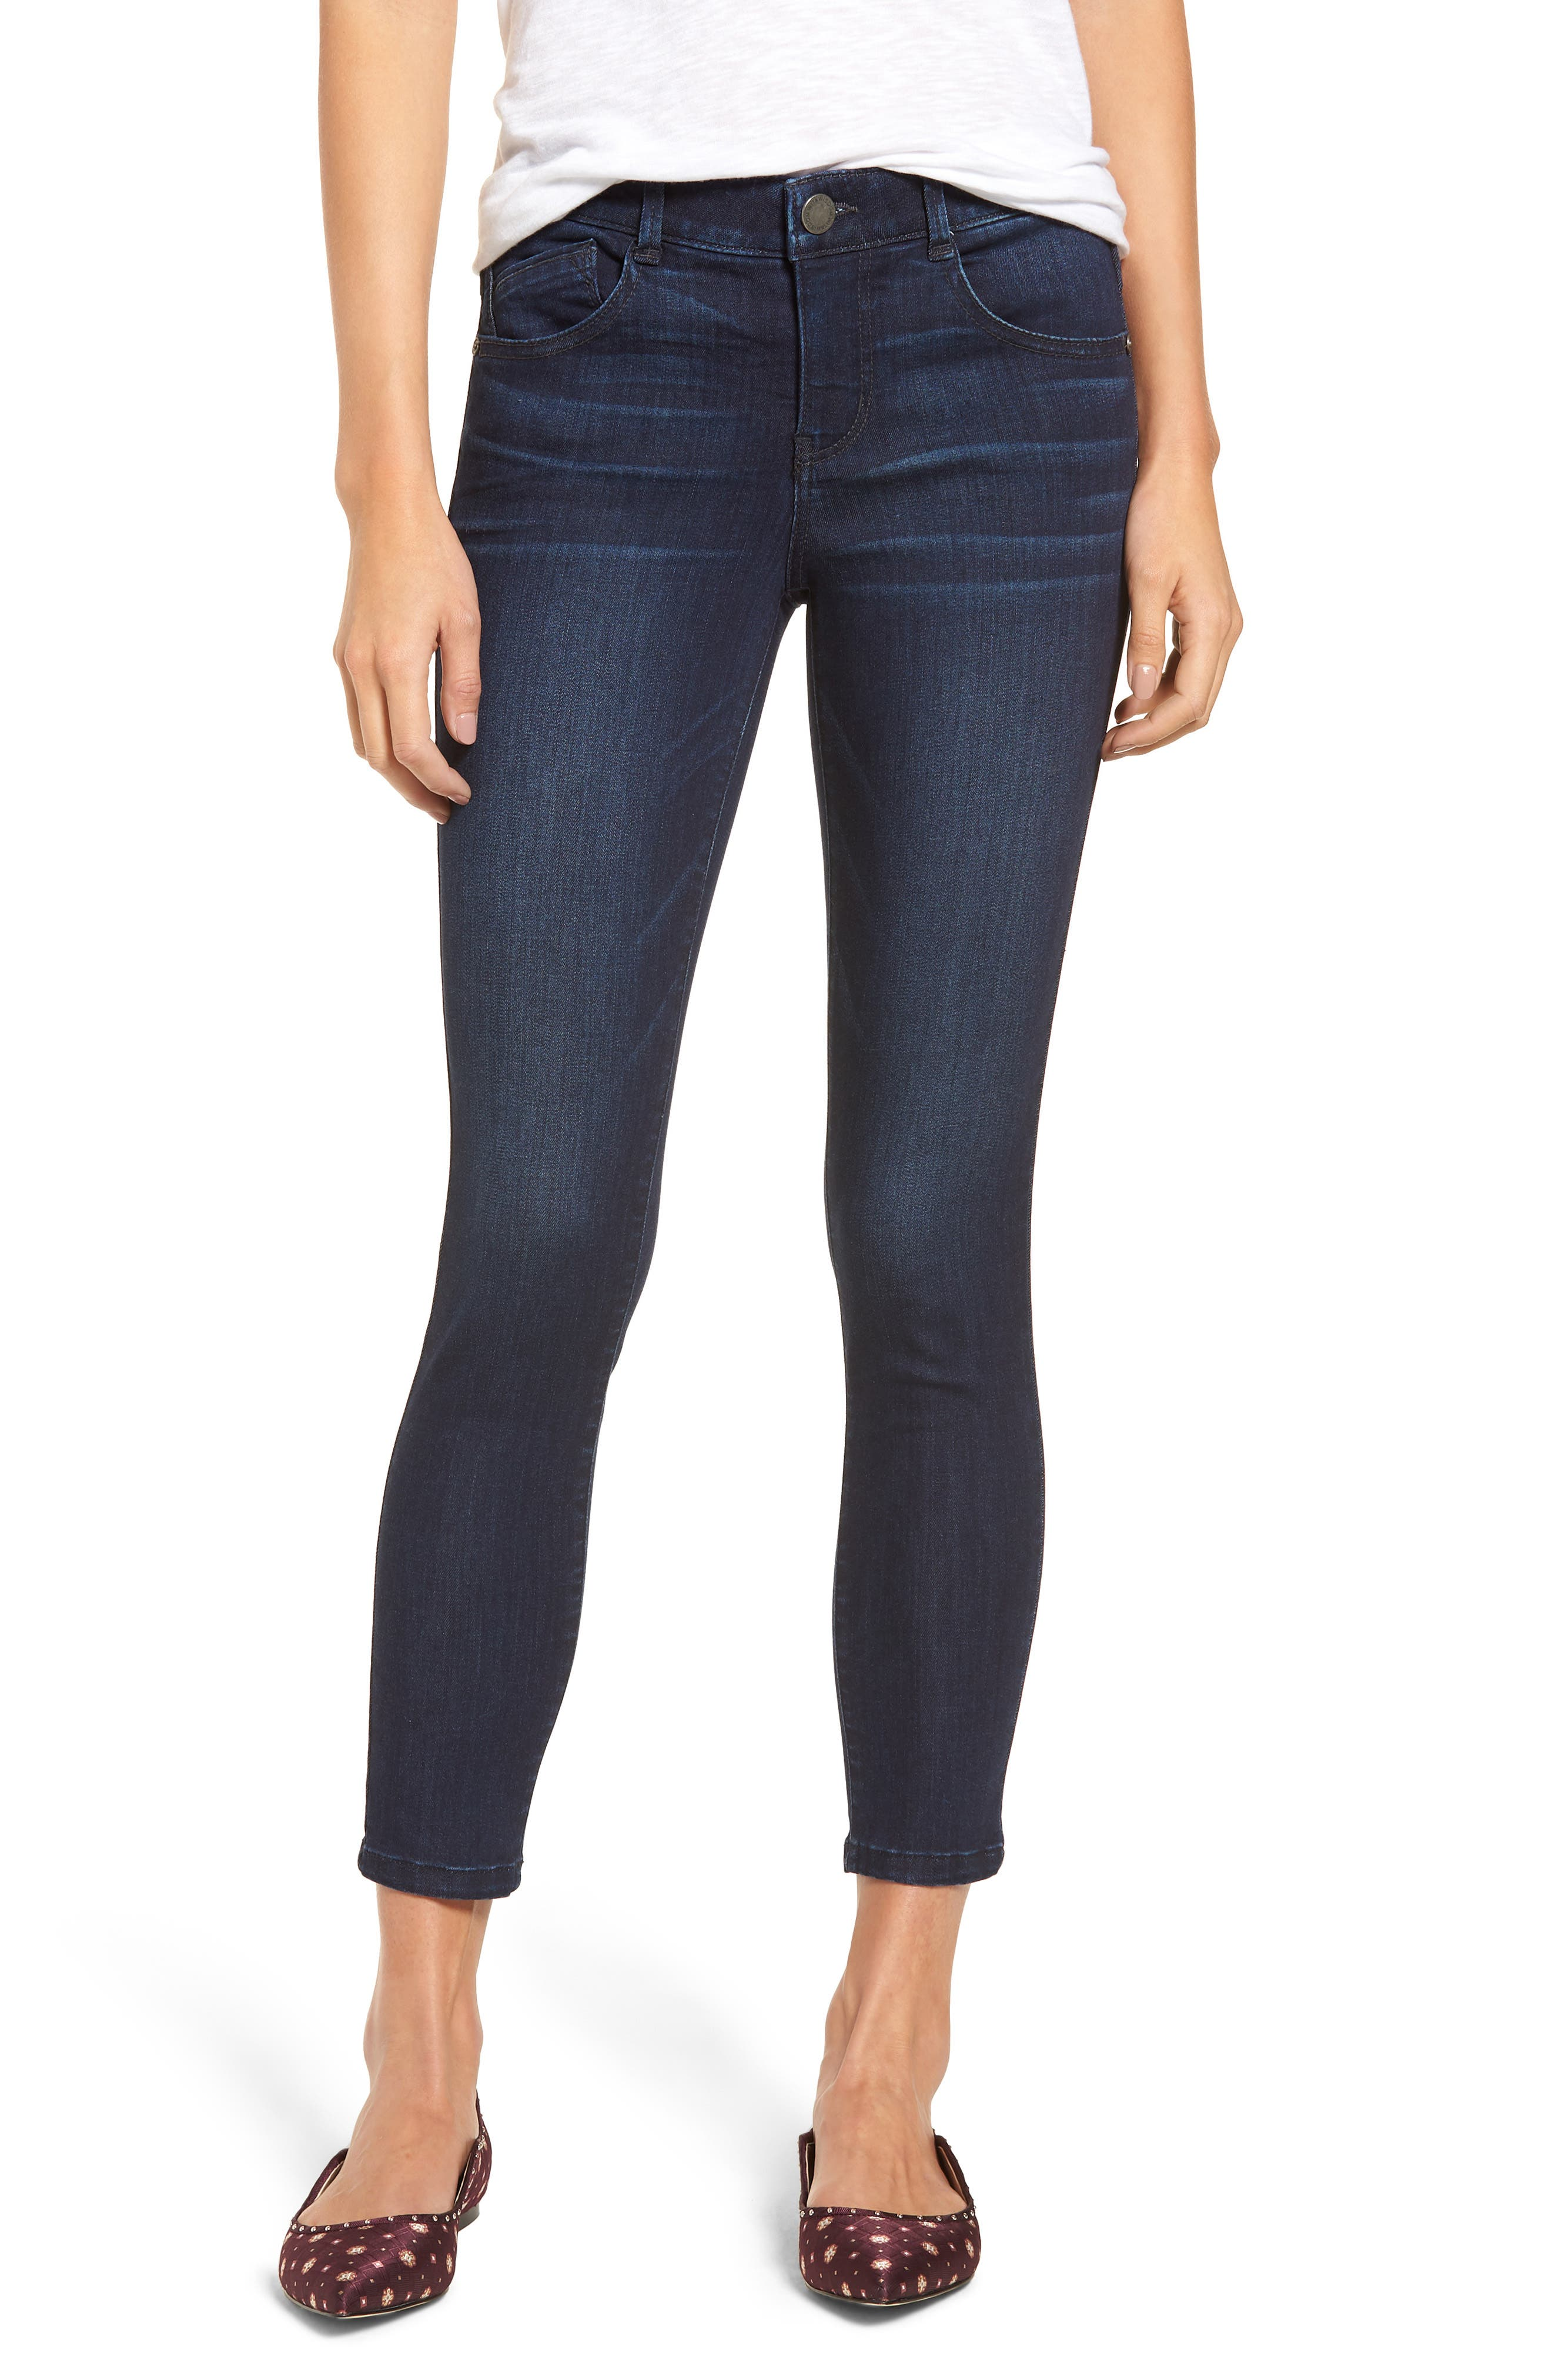 Ab-solution Skinny Jeans,                         Main,                         color, In- Indigo